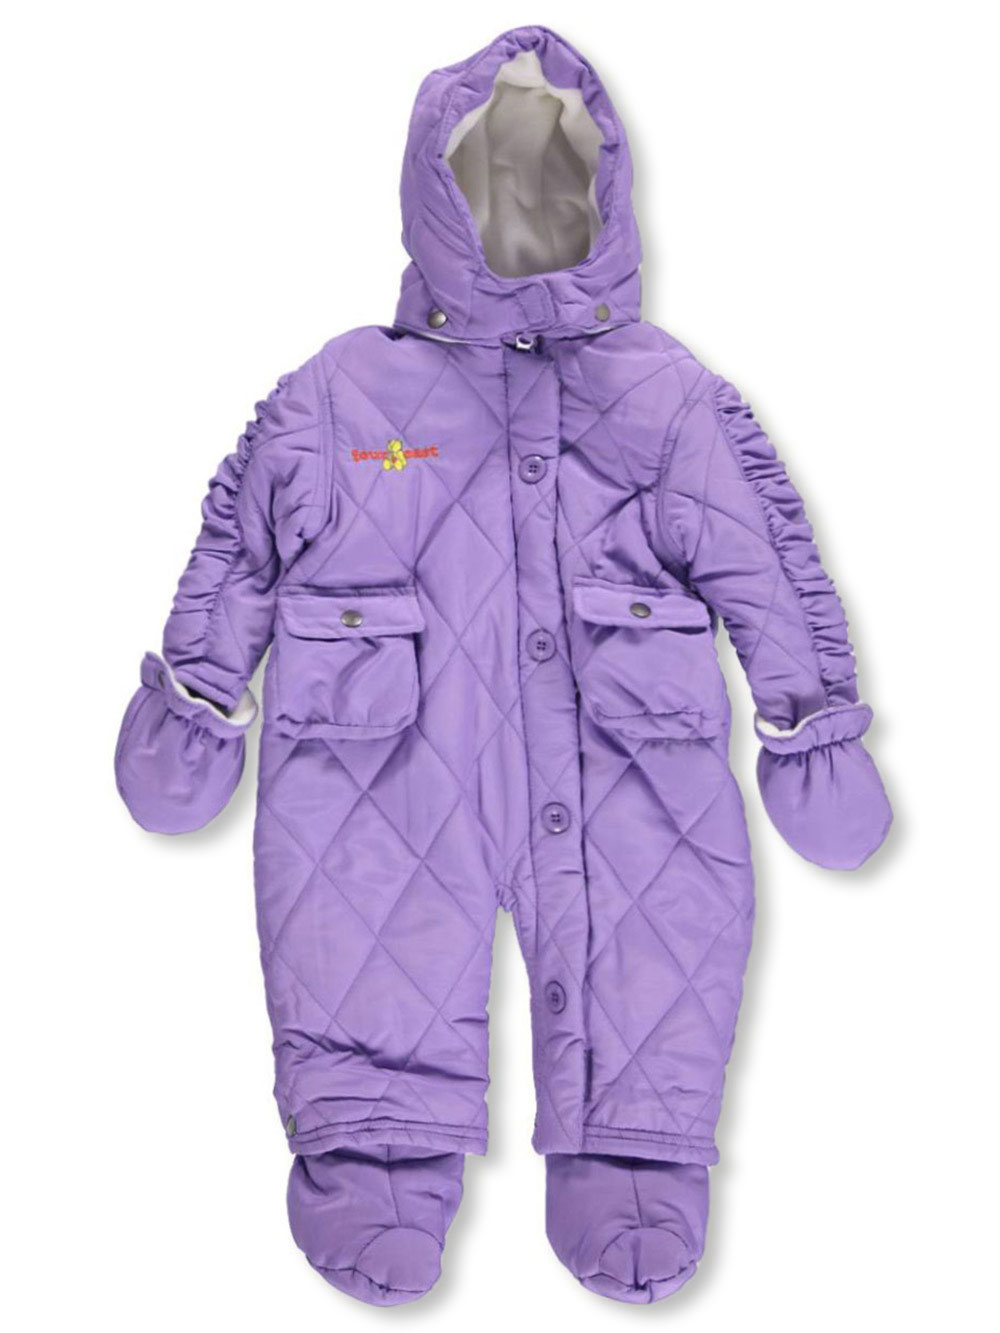 Image of Fourcast Baby Girls Glacia Snowsuit  purple 12  18 months